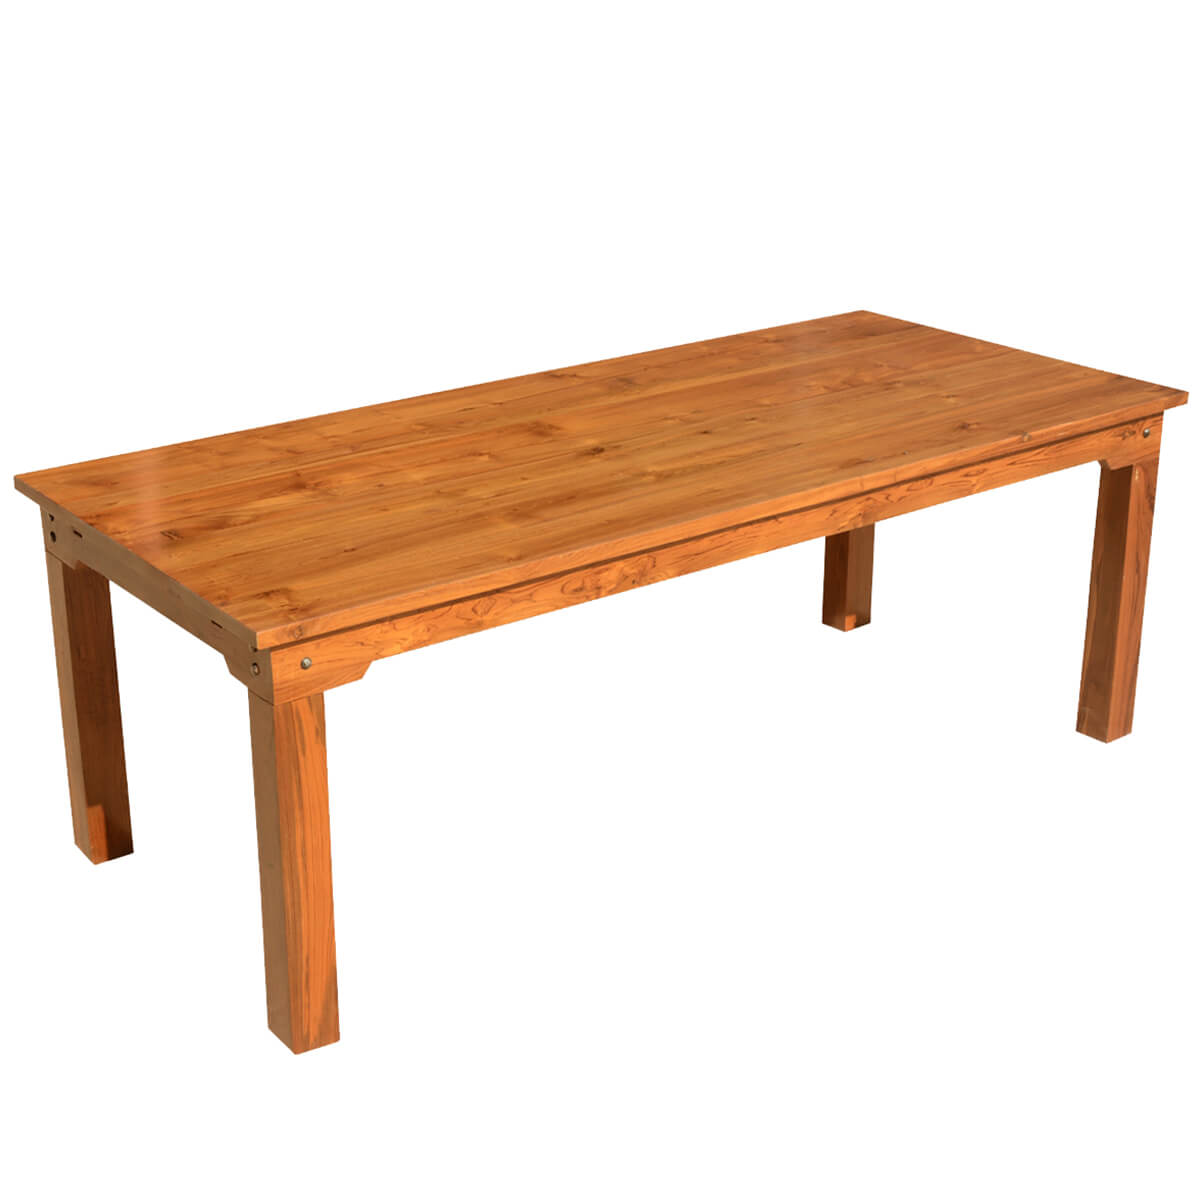 Simply modern solid teak wood dining table w extensions for Solidworks design table zoom